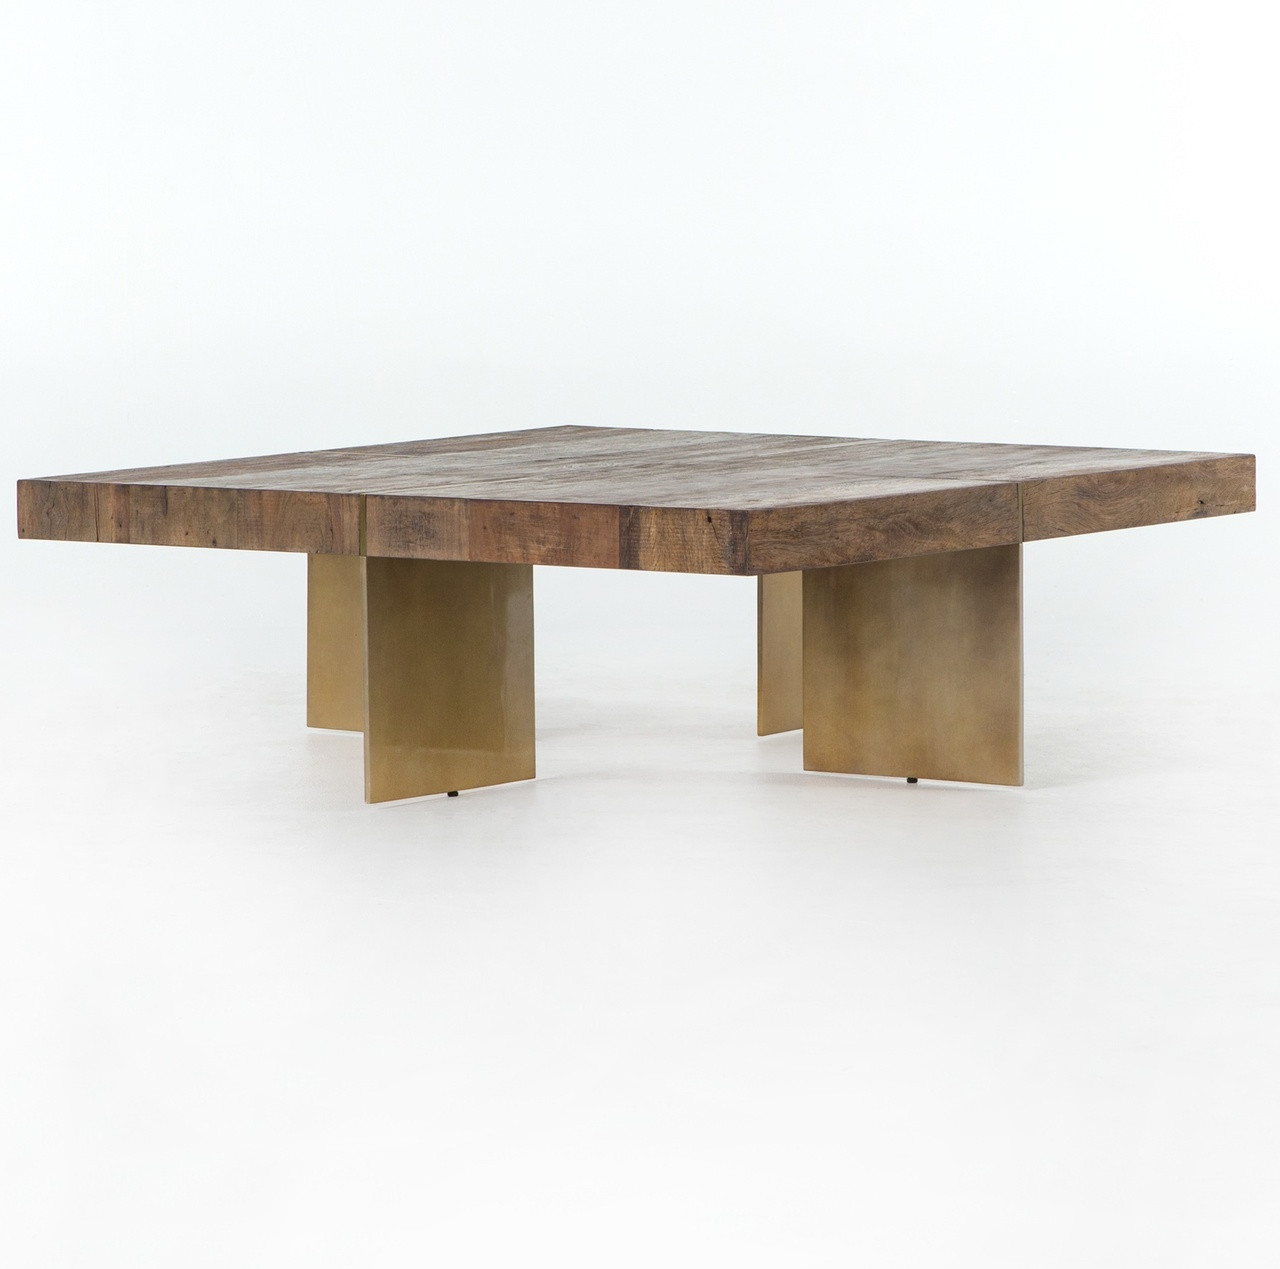 Rustic Reclaimed Wood Coffee Tables Modern Wood Coffee Table